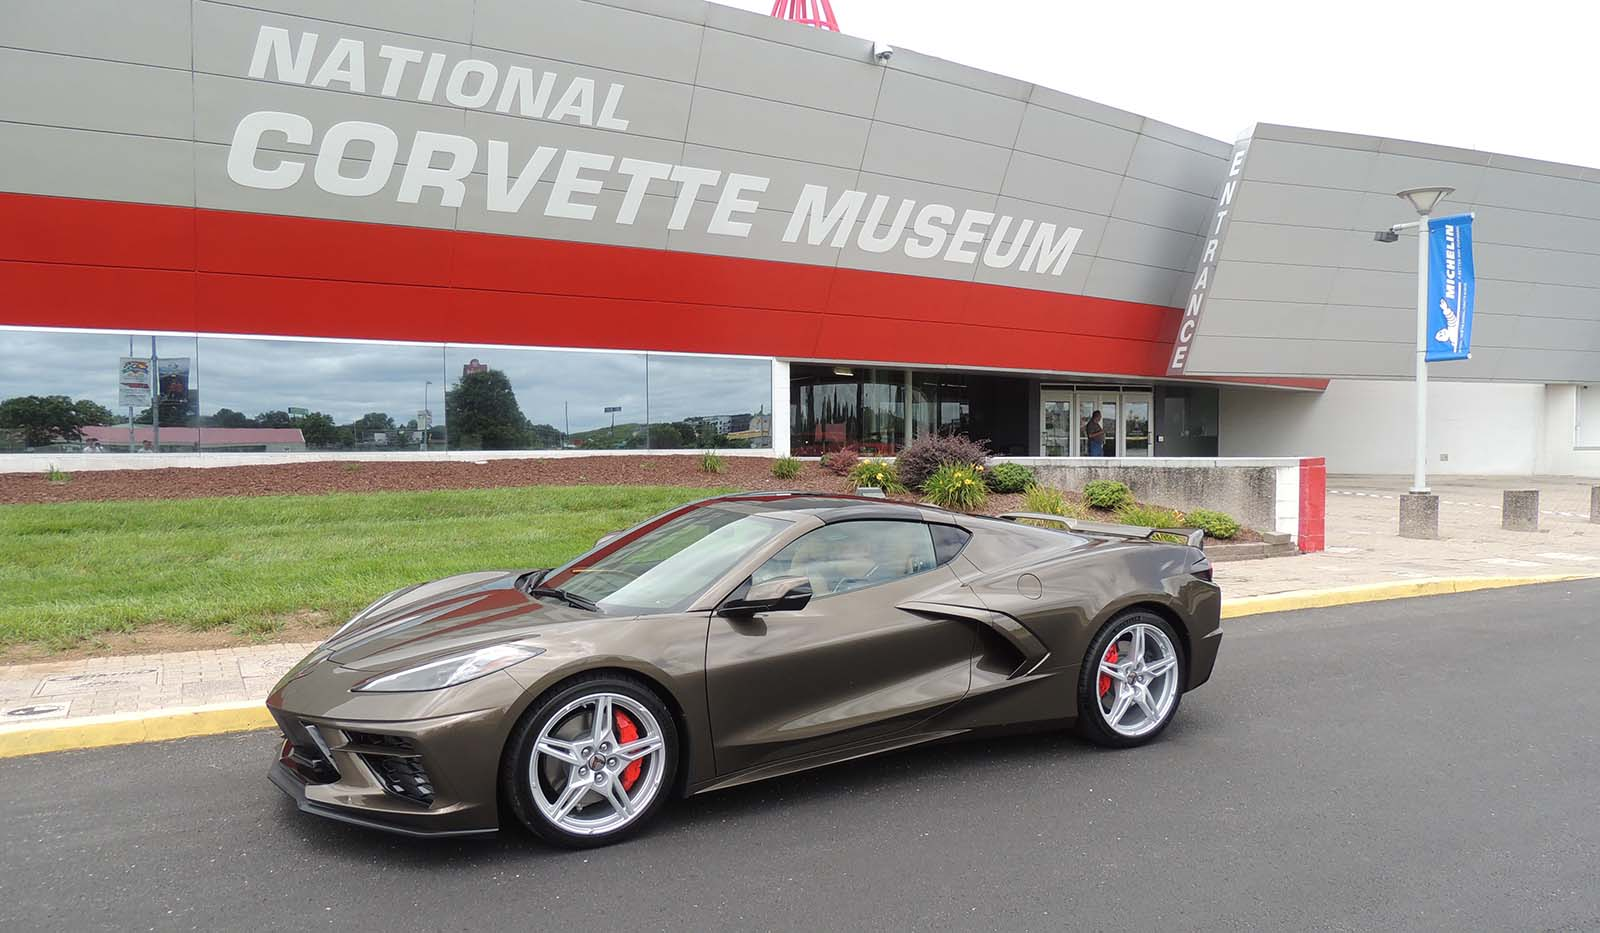 Adam's Polishes Named Official Car Care Product Provider of National Corvette Museum's PDI Area